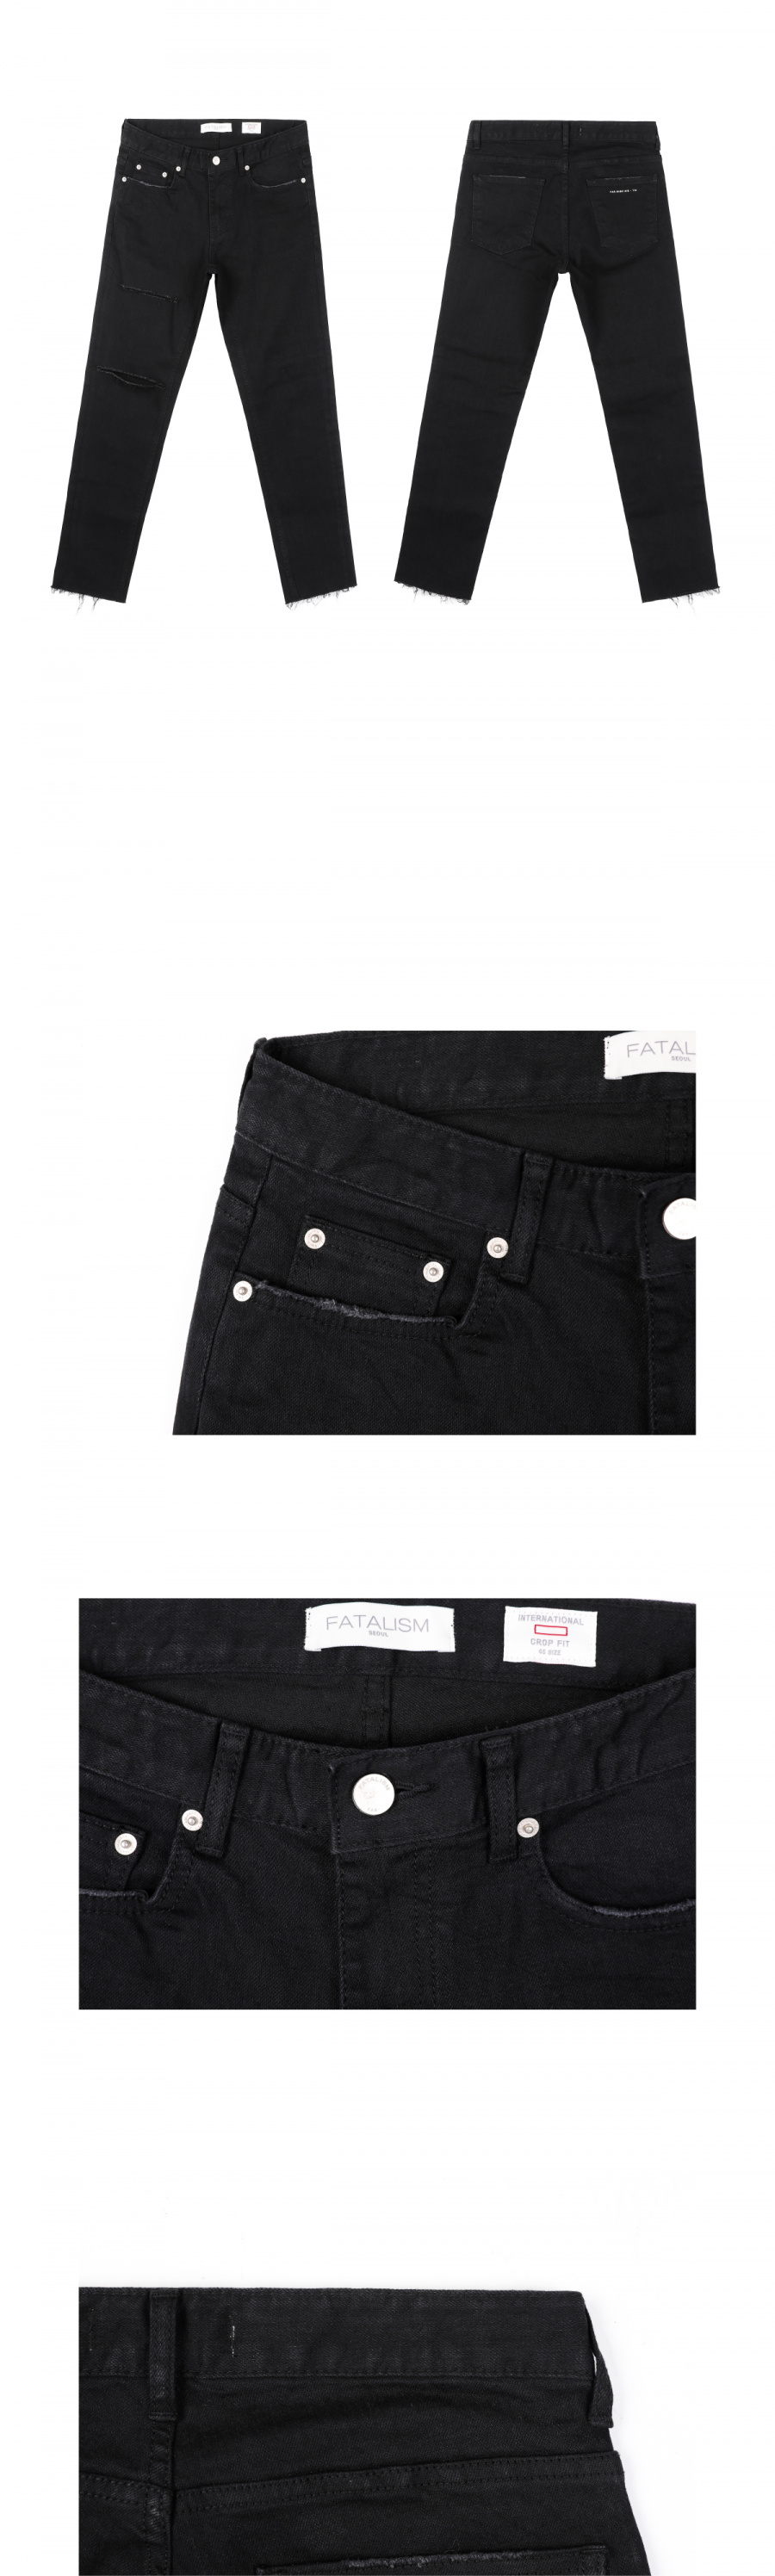 페이탈리즘(FATALISM) black knife cutting crop fit #0138